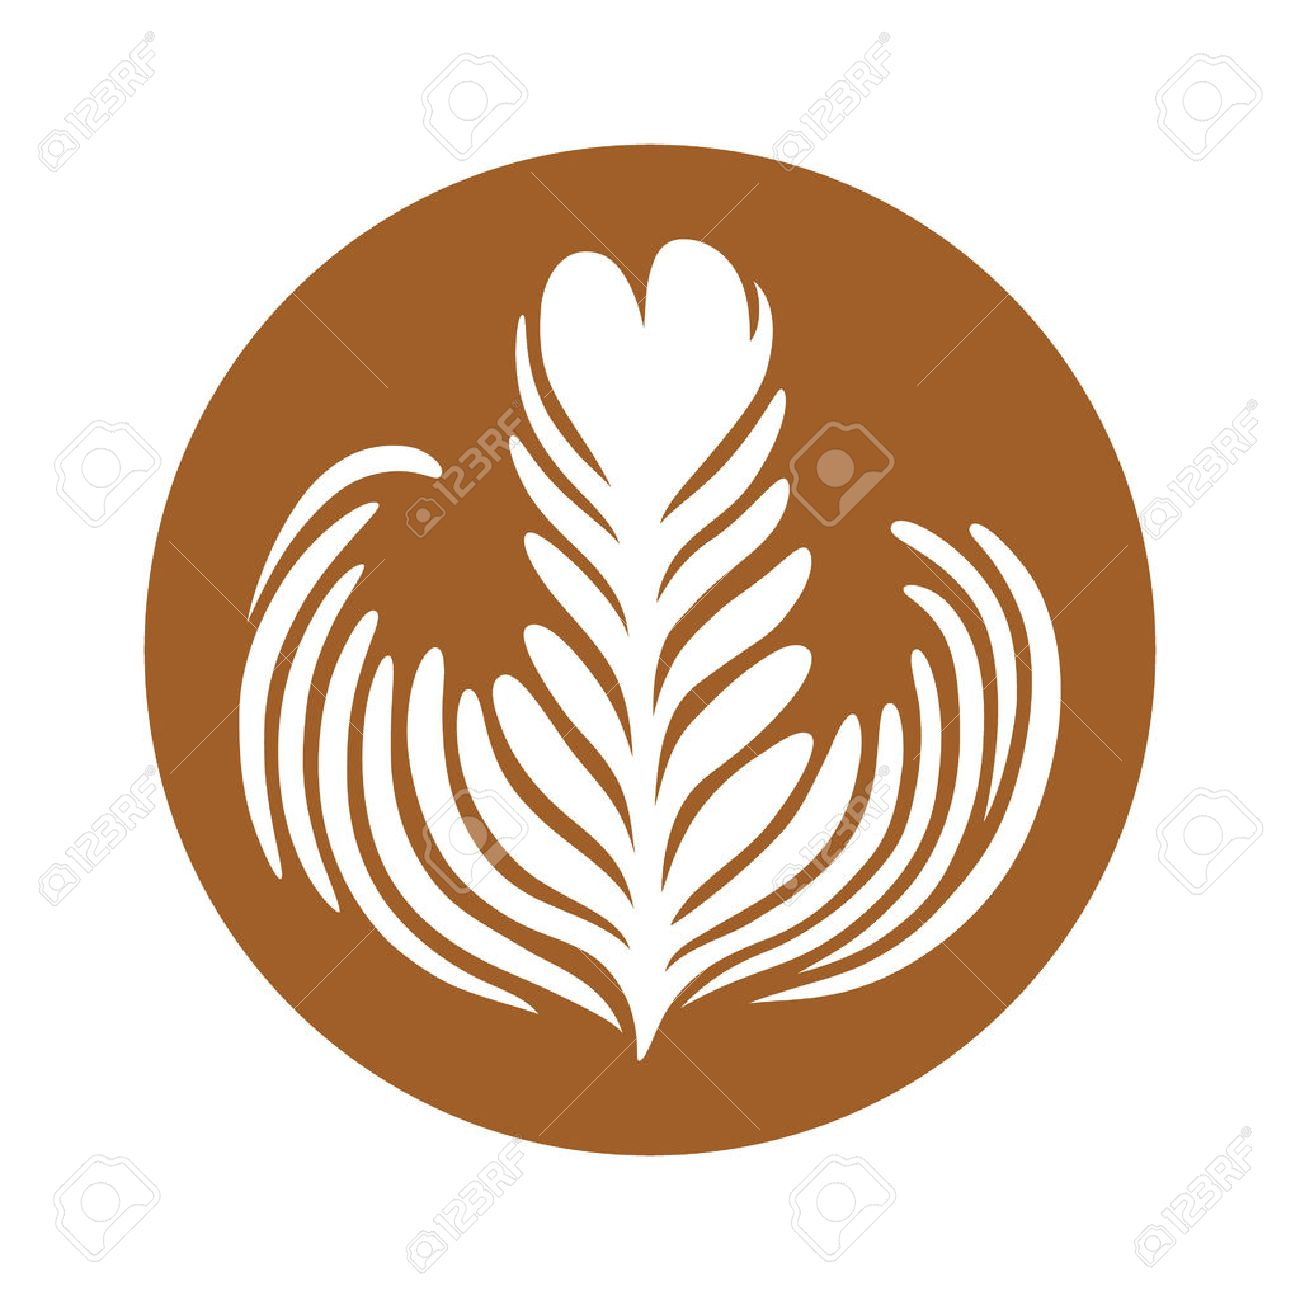 Latte / espresso art of a rosette leaf flat color vector icon for coffee apps and websites - 70448312